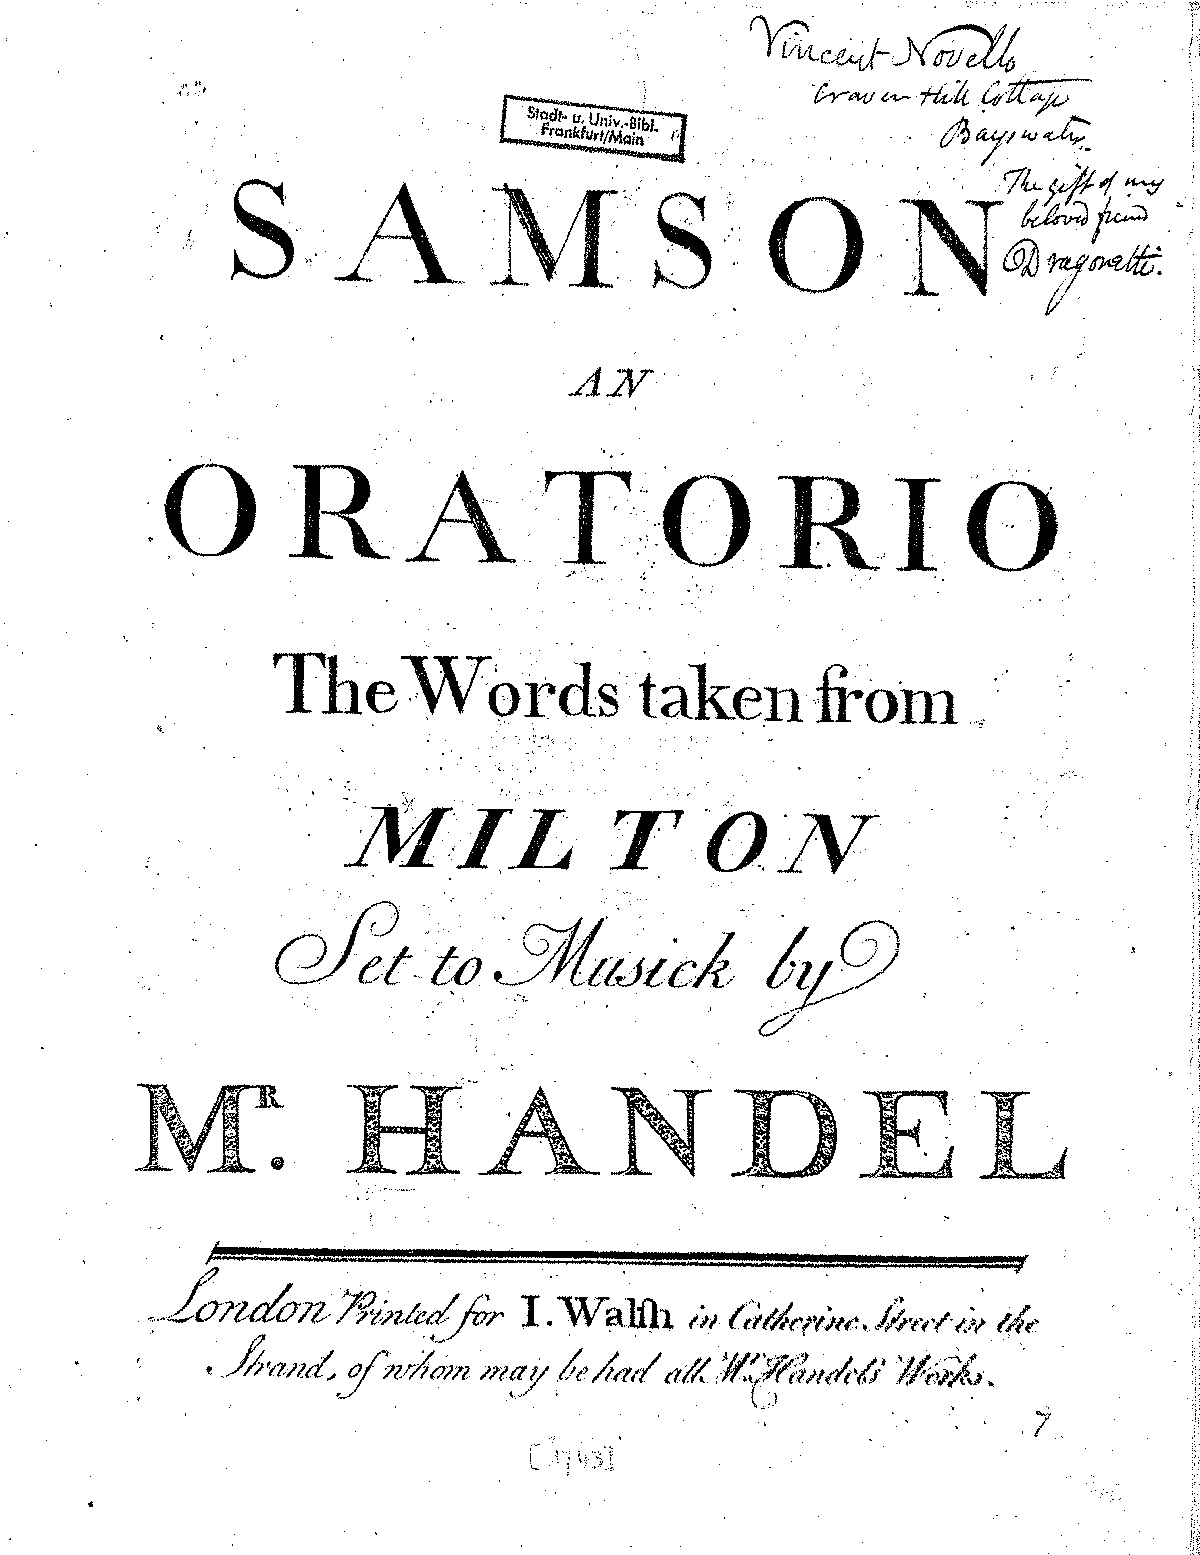 PMLP44397-Samson an Oratorio, set to Musick by Mr Handel.pdf